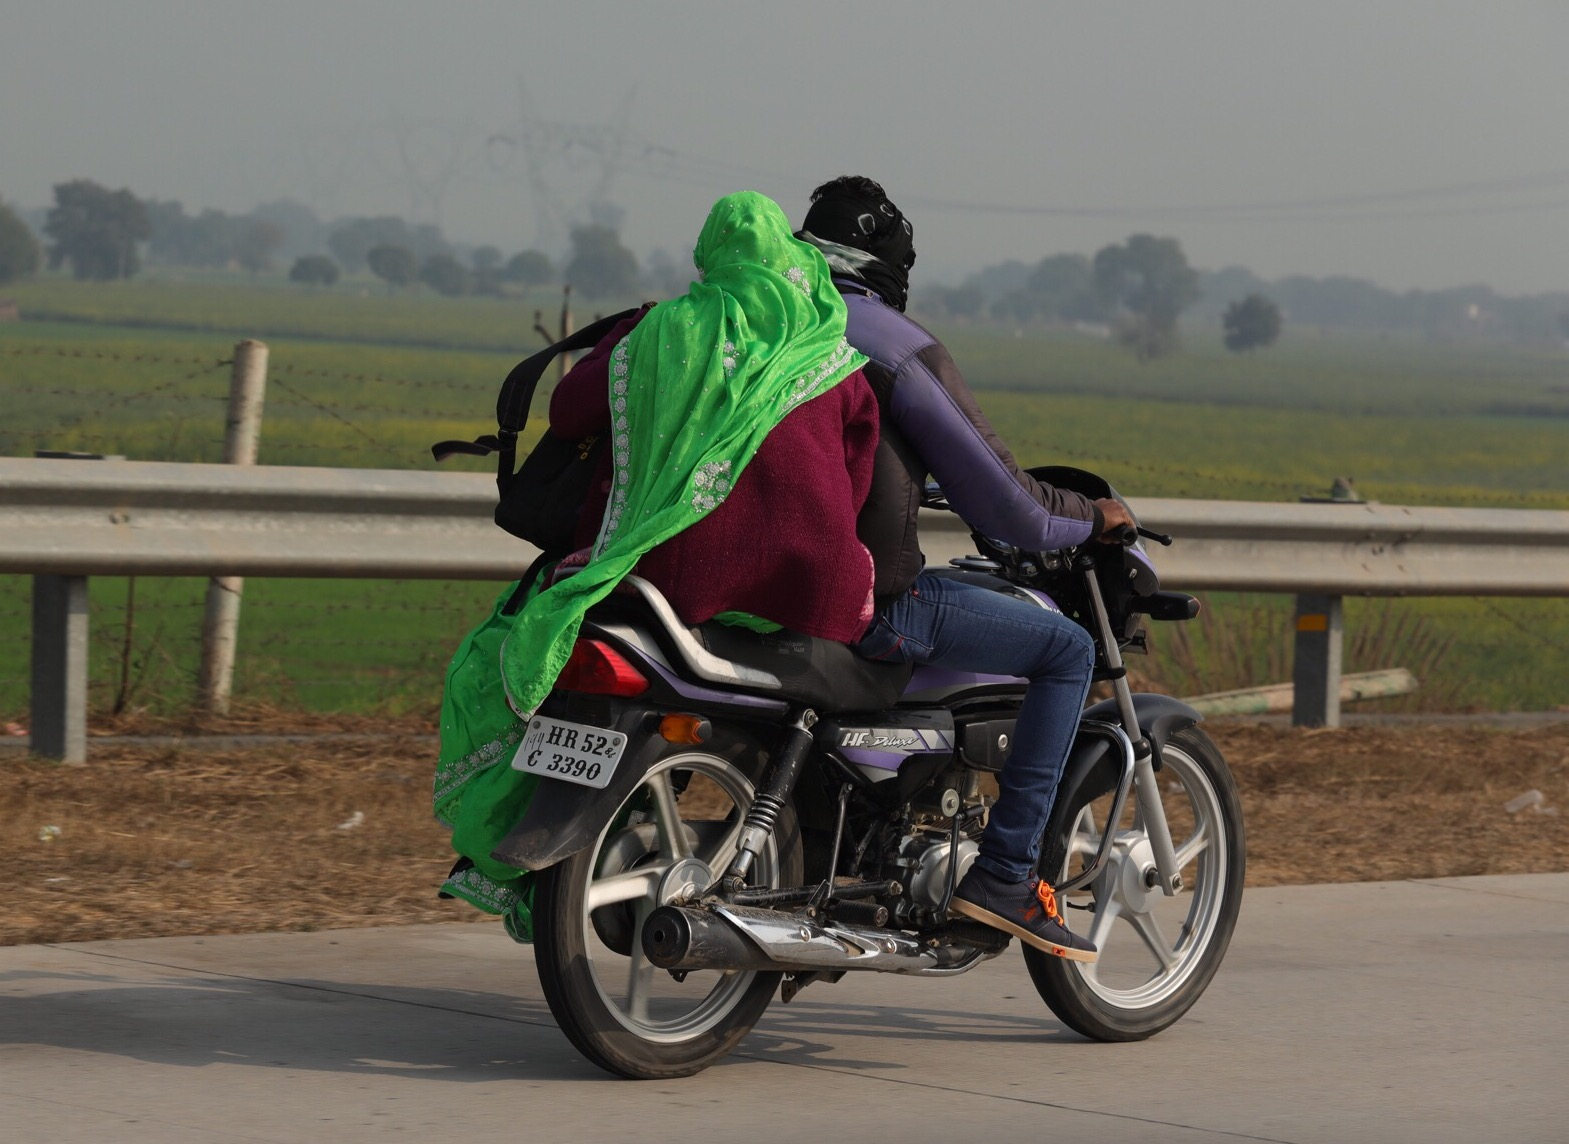 Saris & bike wheels going round at 50mph can only end in tears!